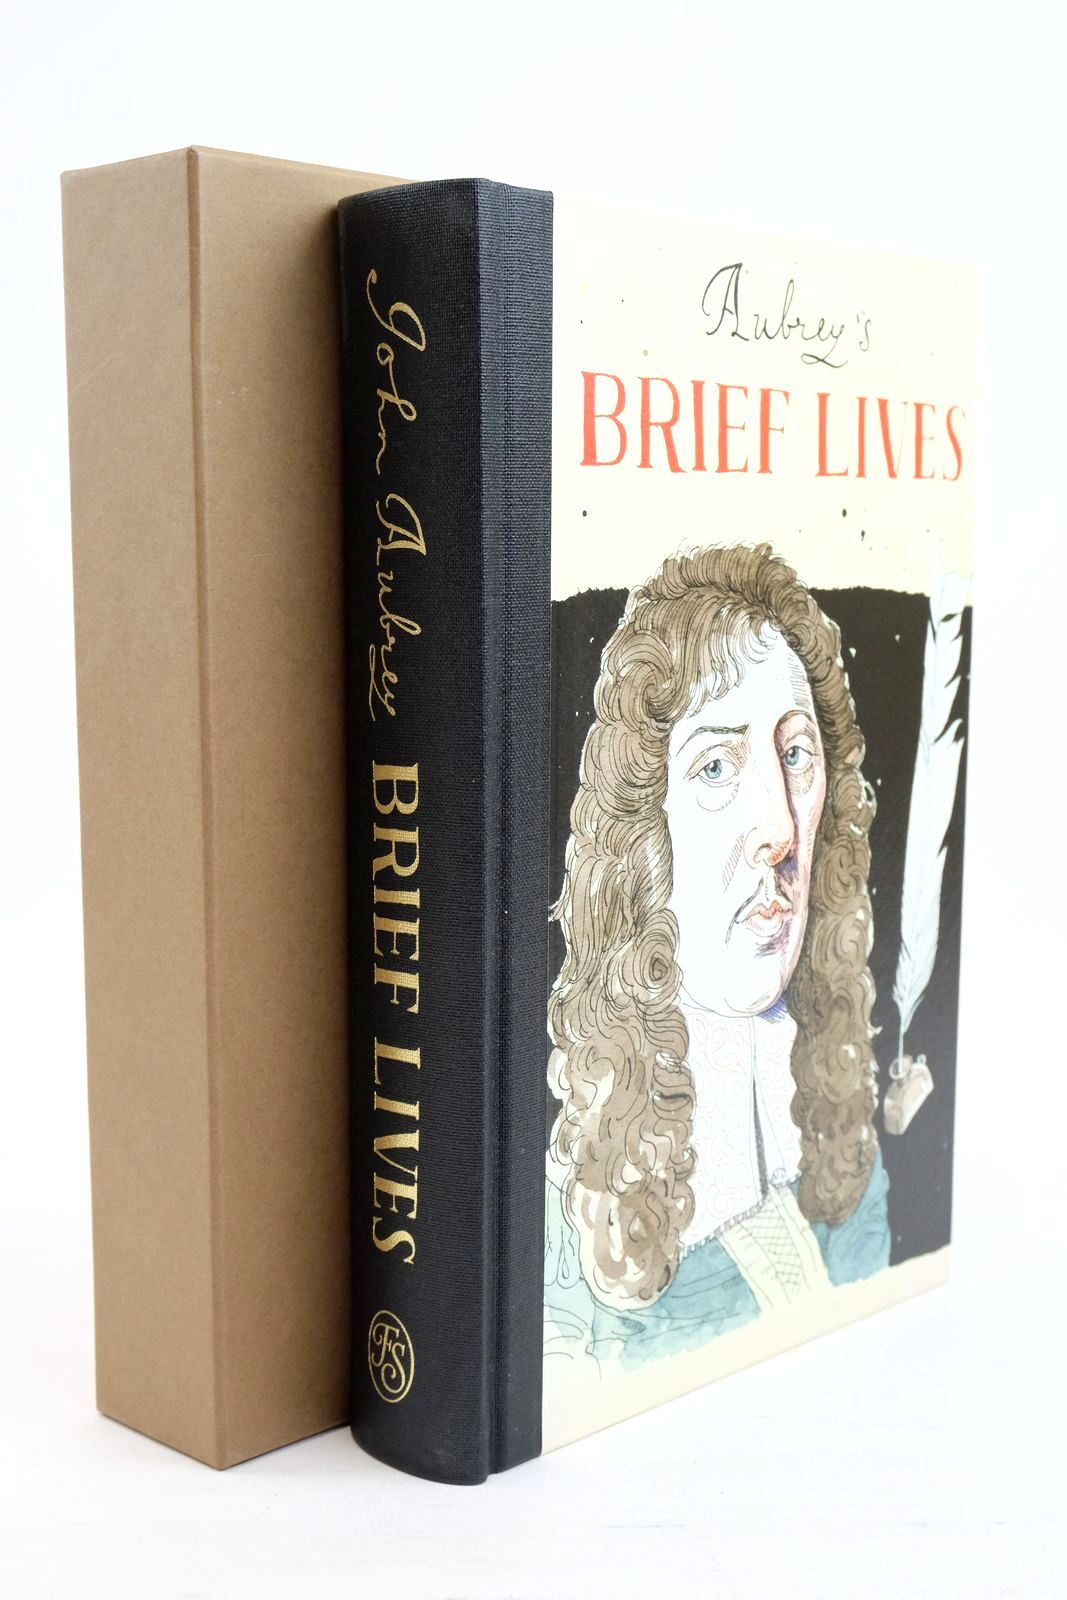 Photo of BRIEF LIVES written by Aubrey, John Dick, Oliver Lawson Conrad, Peter illustrated by Ciardiello, Joseph published by Folio Society (STOCK CODE: 1320862)  for sale by Stella & Rose's Books